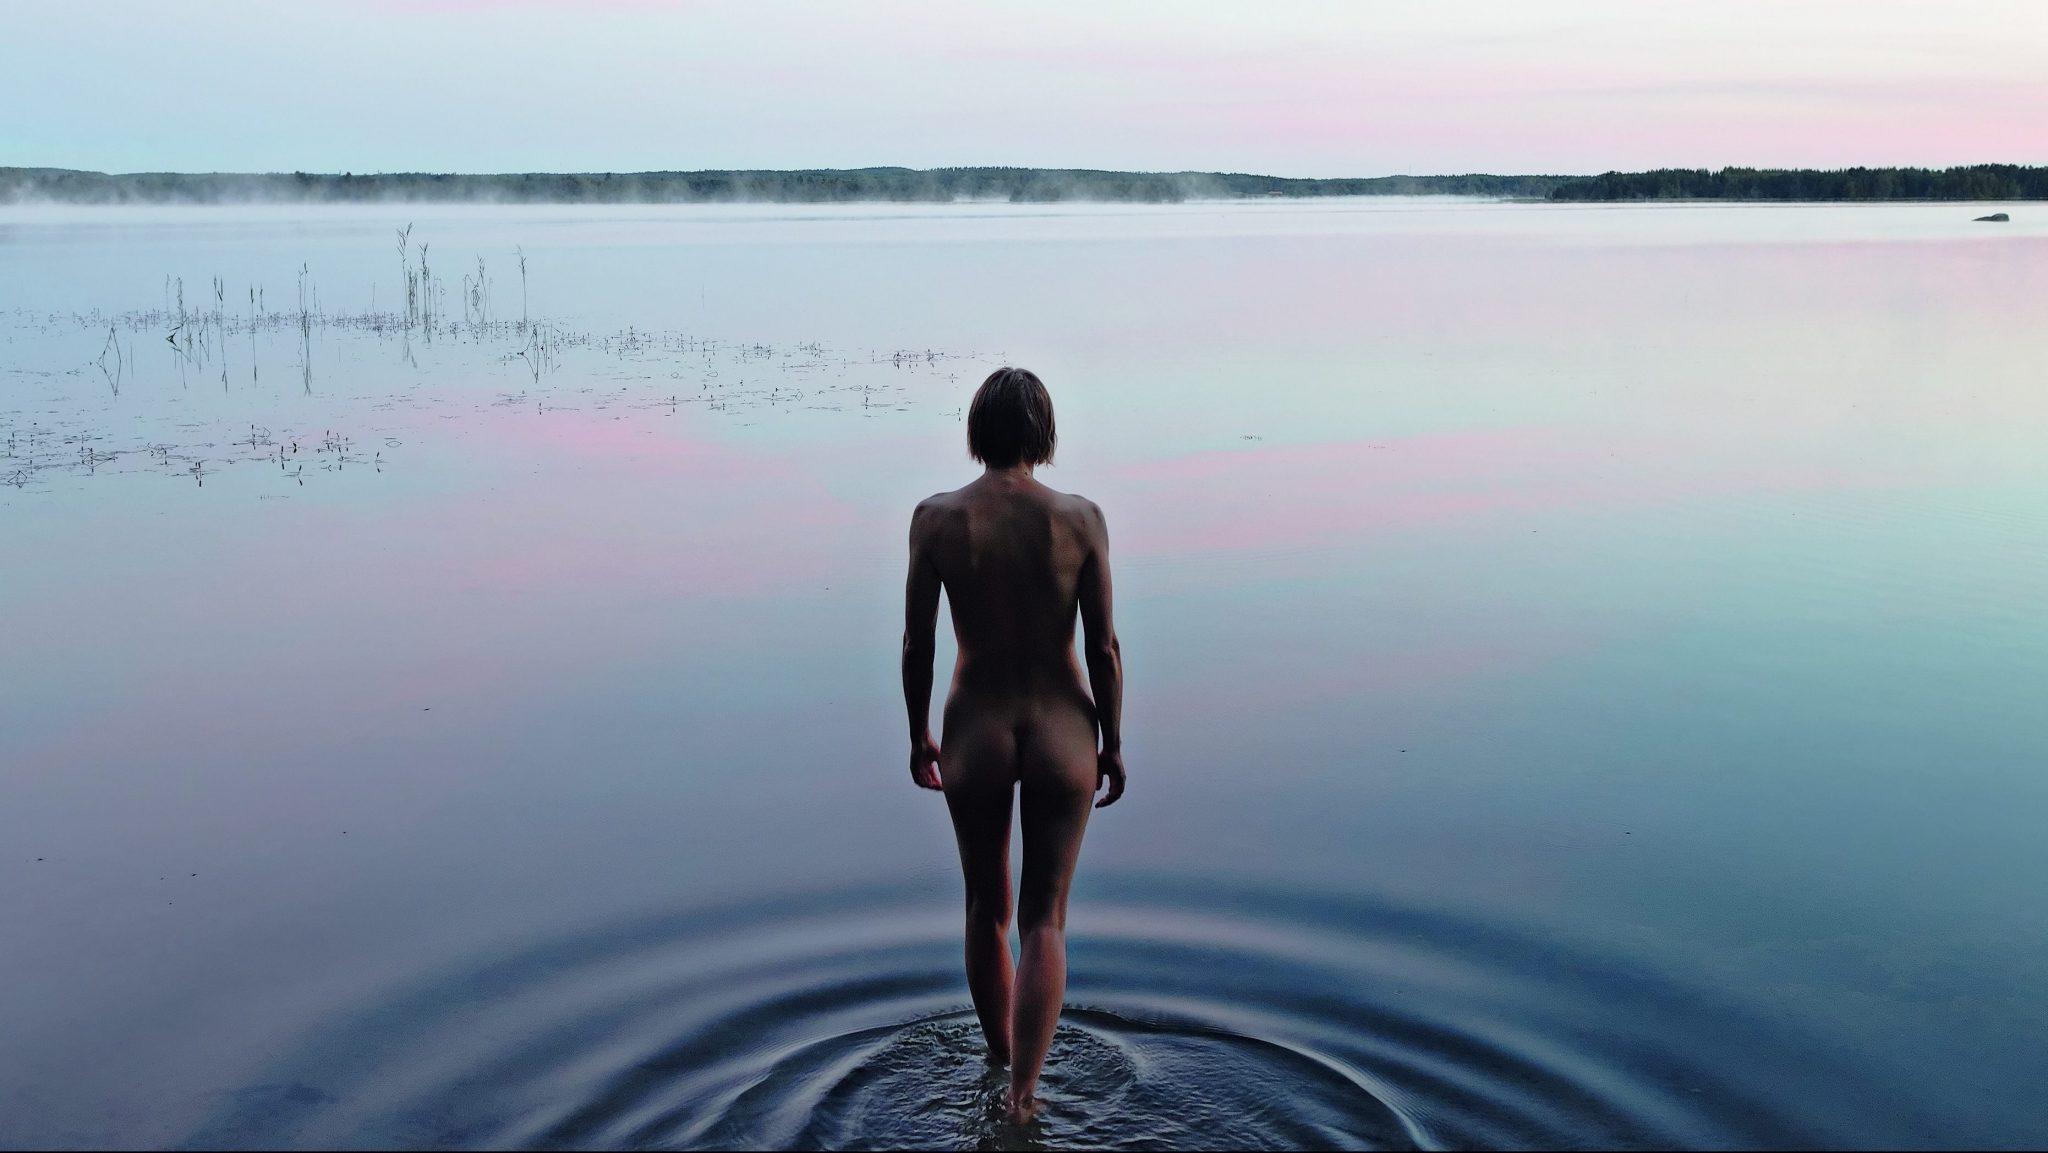 Elina Brotherus, The Black Bay Sequence, 2010, HD video, 16:9